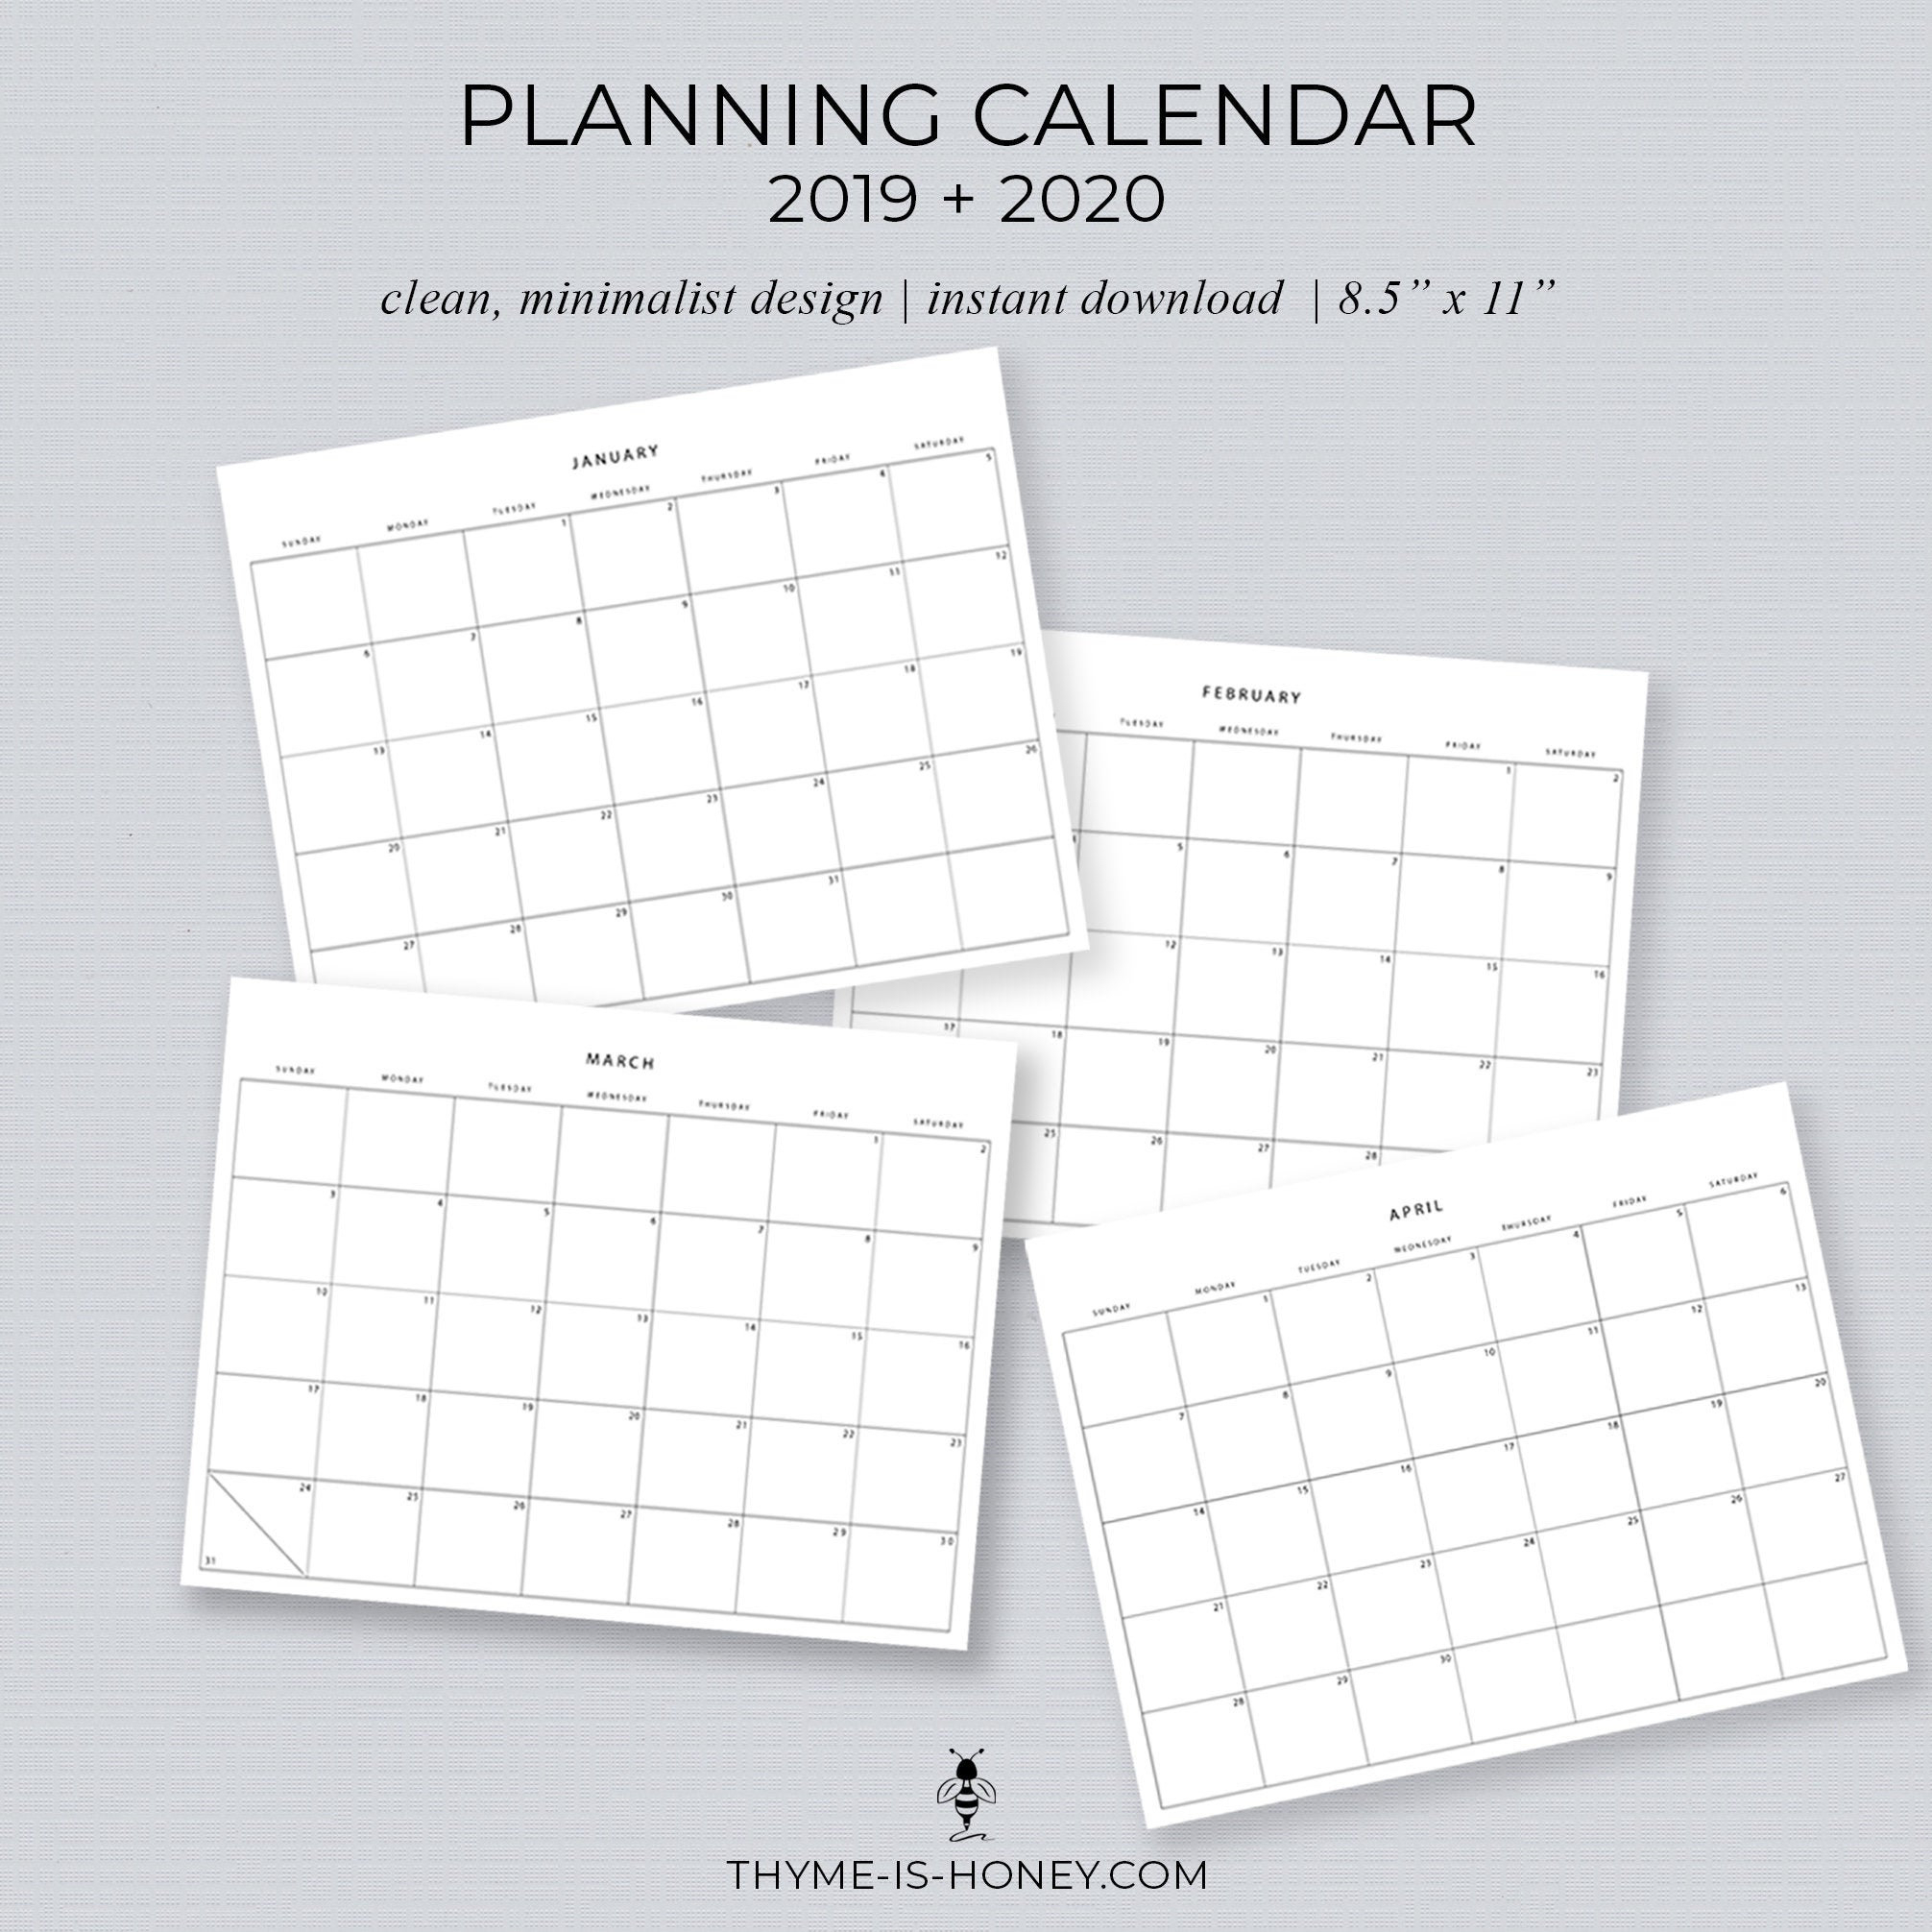 "2019 + 2020 Printable Planning Calendars - 11 X 8.5"" throughout 2020 Calendar For 5.5 X 8.5"